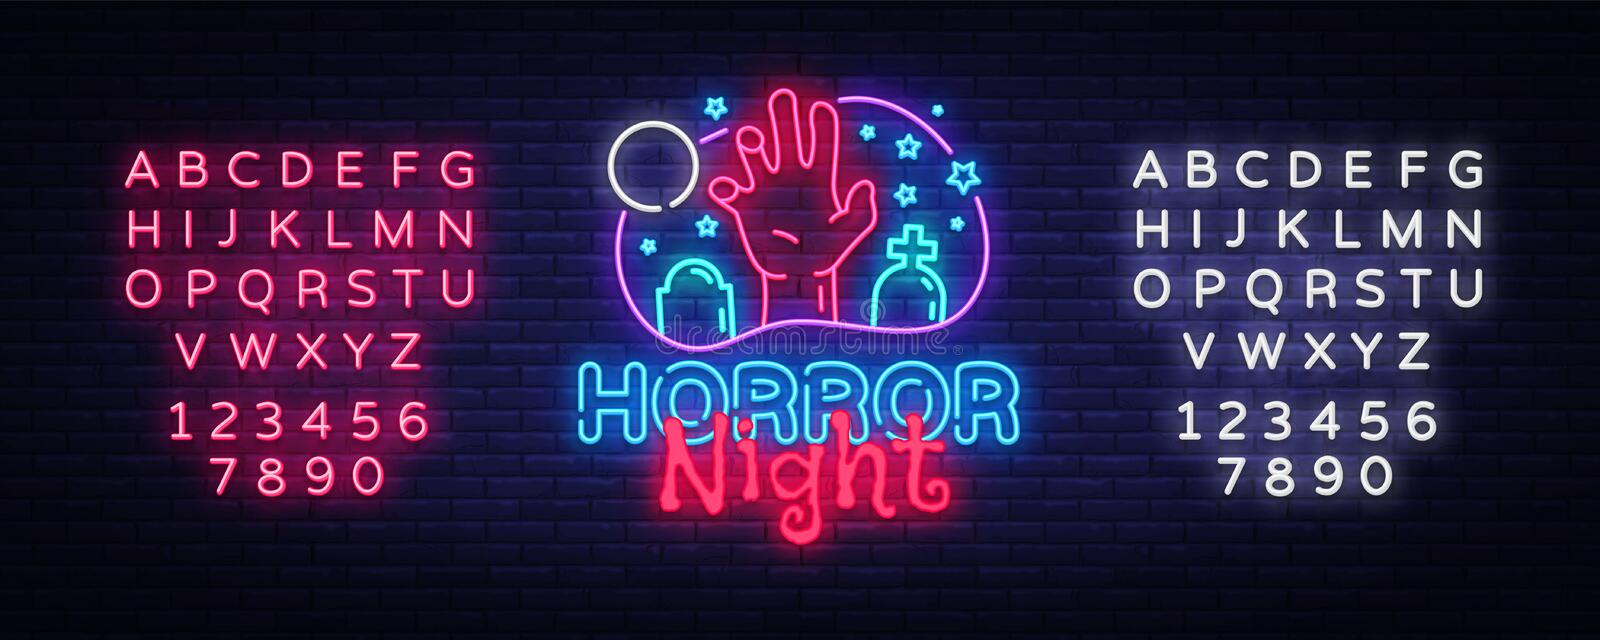 Horror Night neon sign vector. Halloween Poster Design template neon sign, Horror light banner, neon signboard, nightly. Bright advertising, light inscription stock illustration